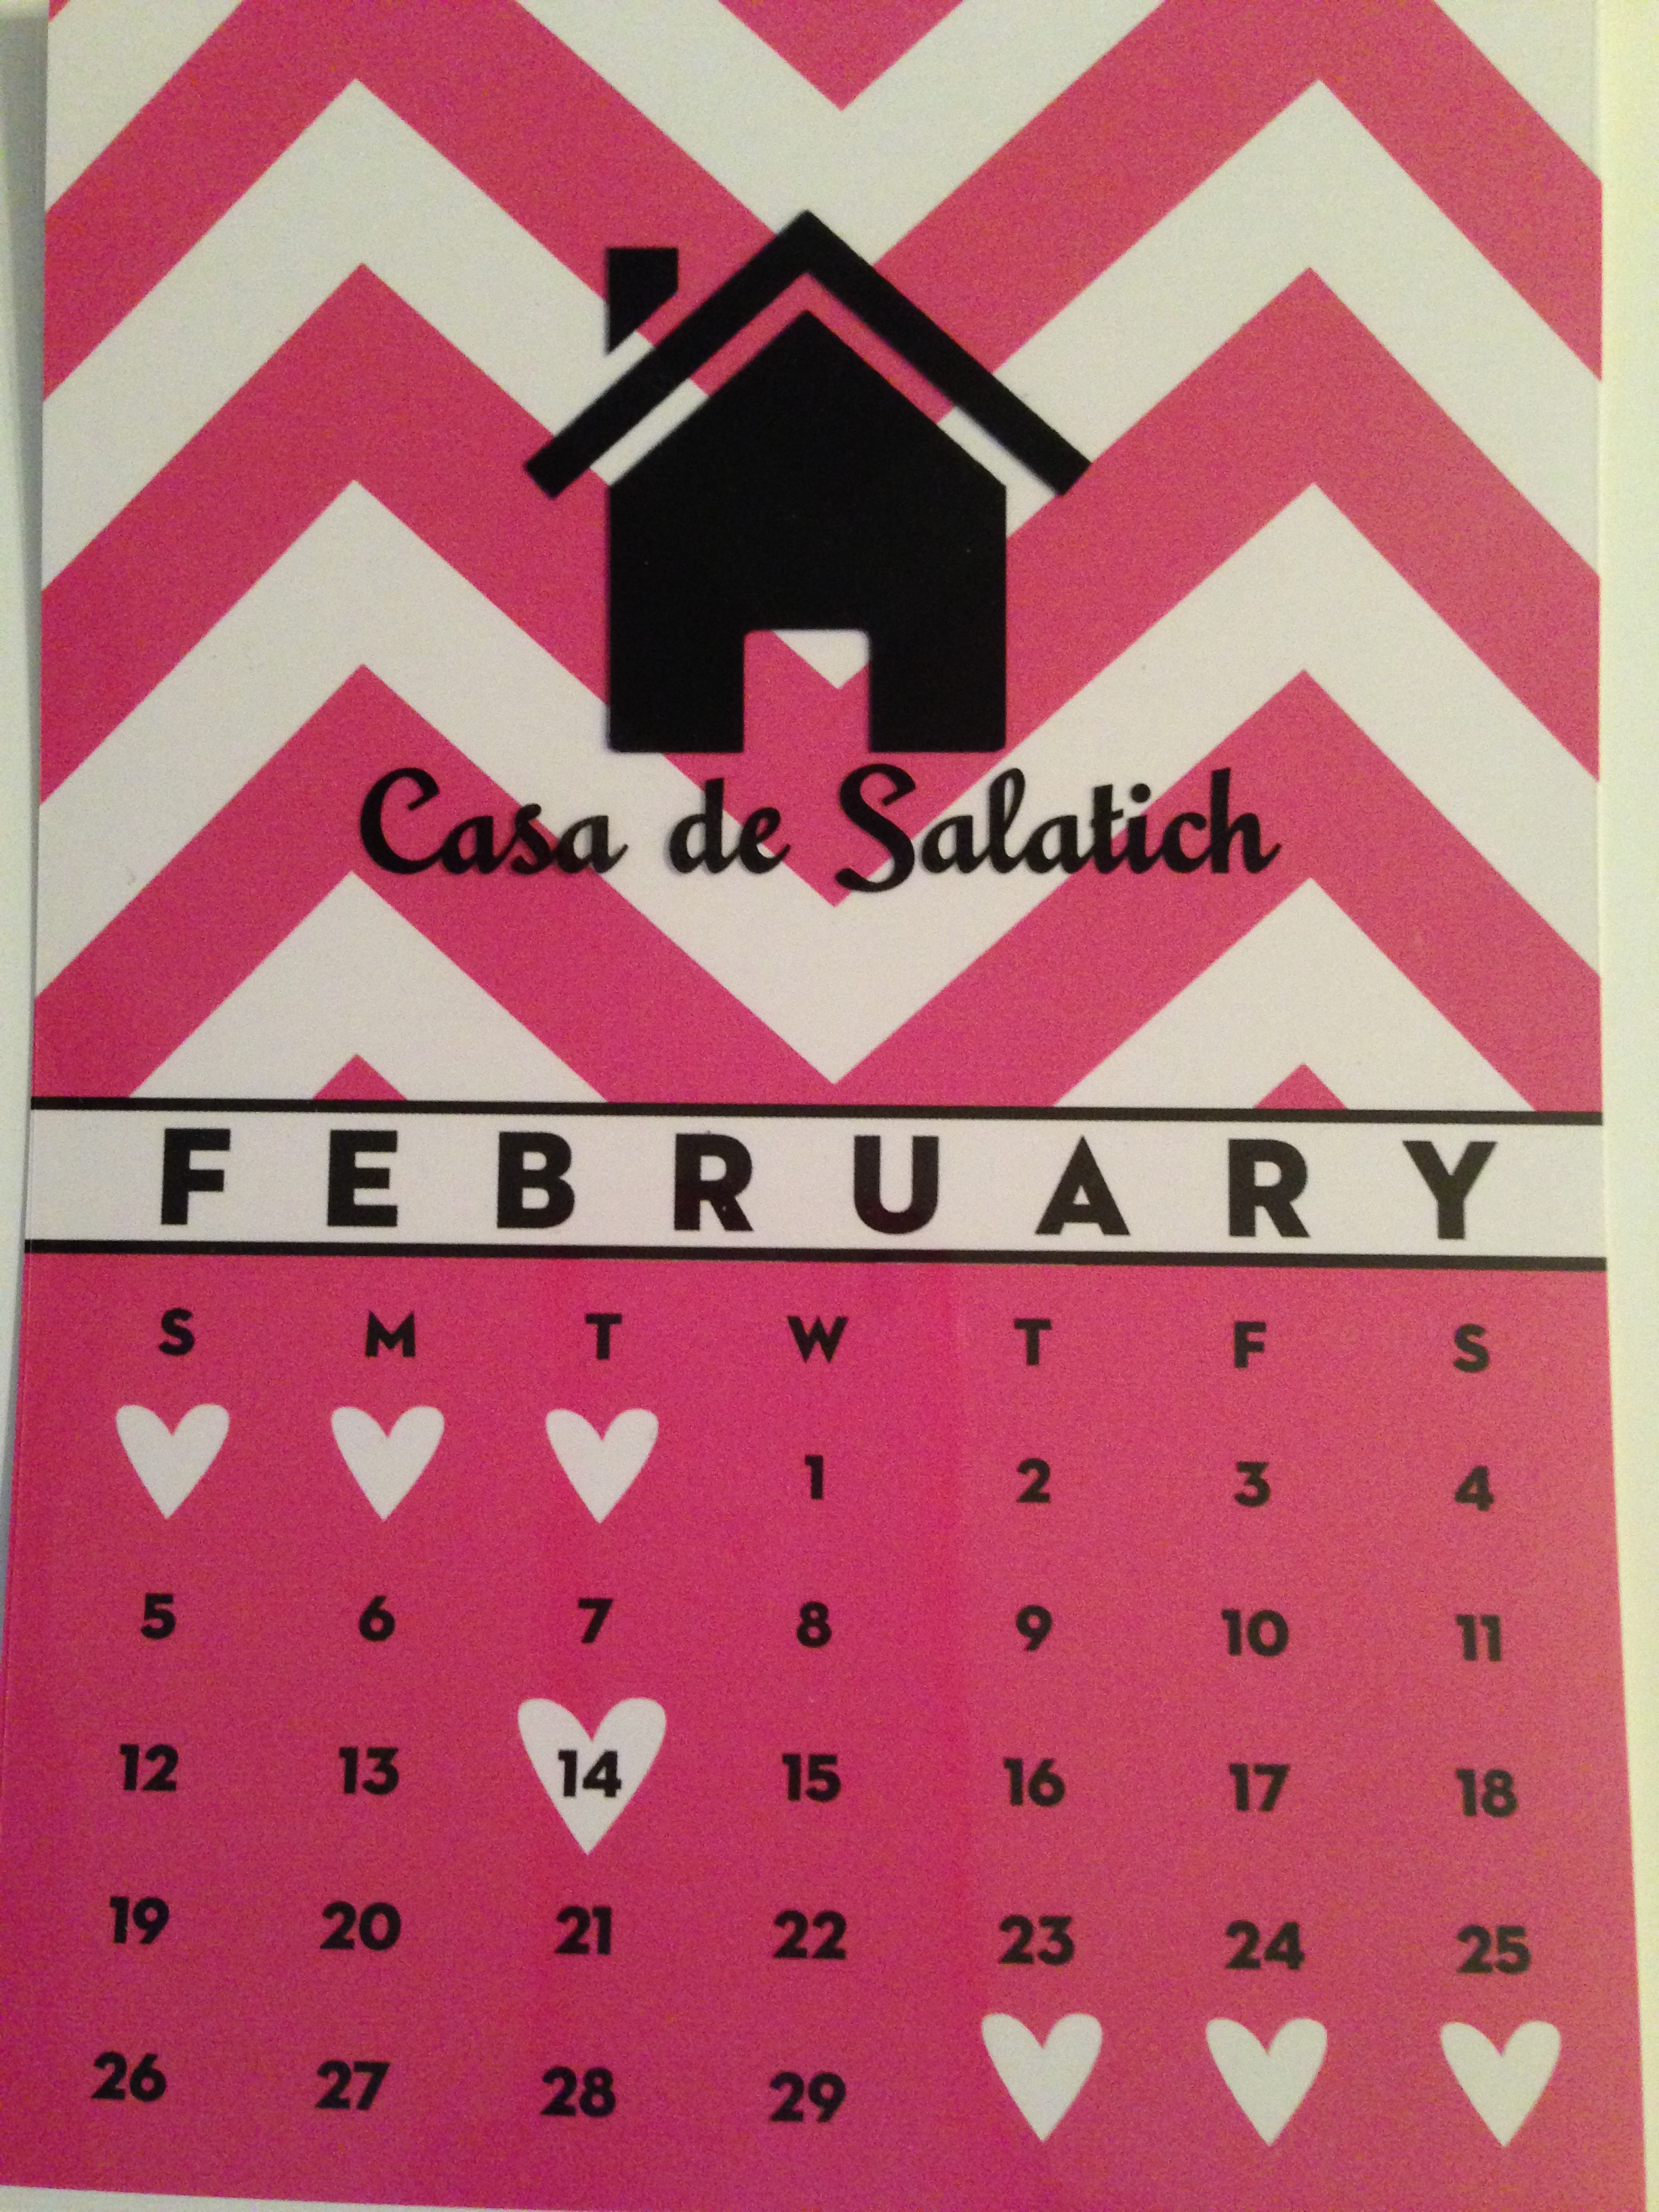 Personalized Calendars and Gifts From Monogrammed Papers | Debi ...